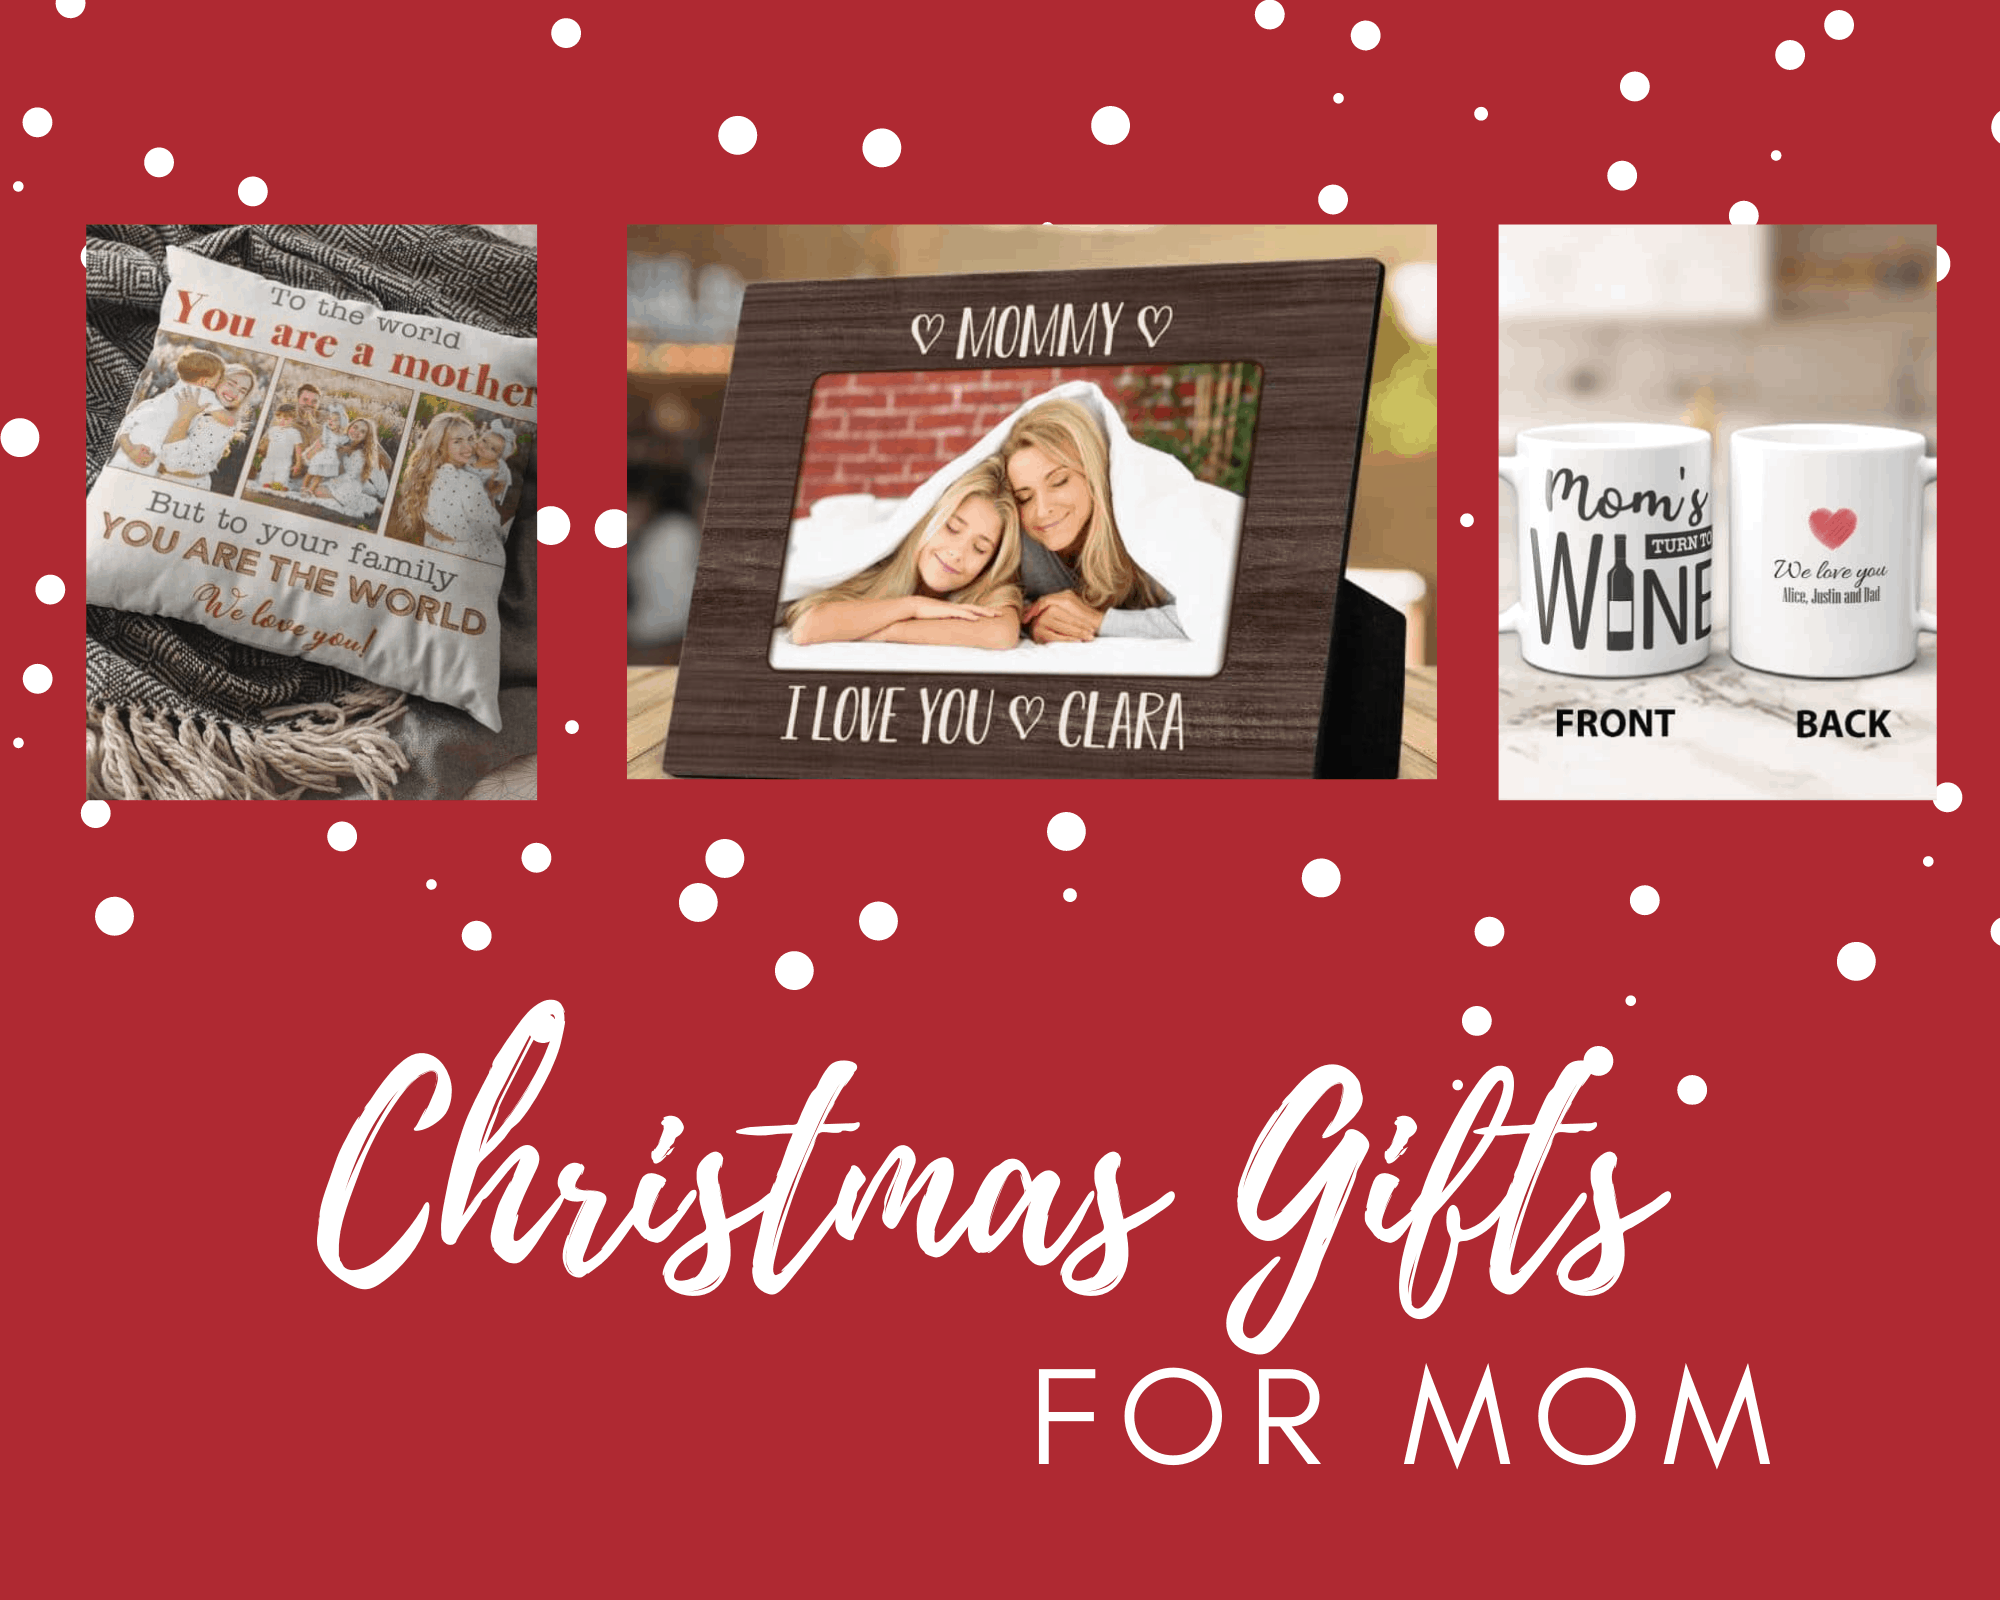 59 Best Christmas Gifts for Mom That Bring Her Joy (2021)